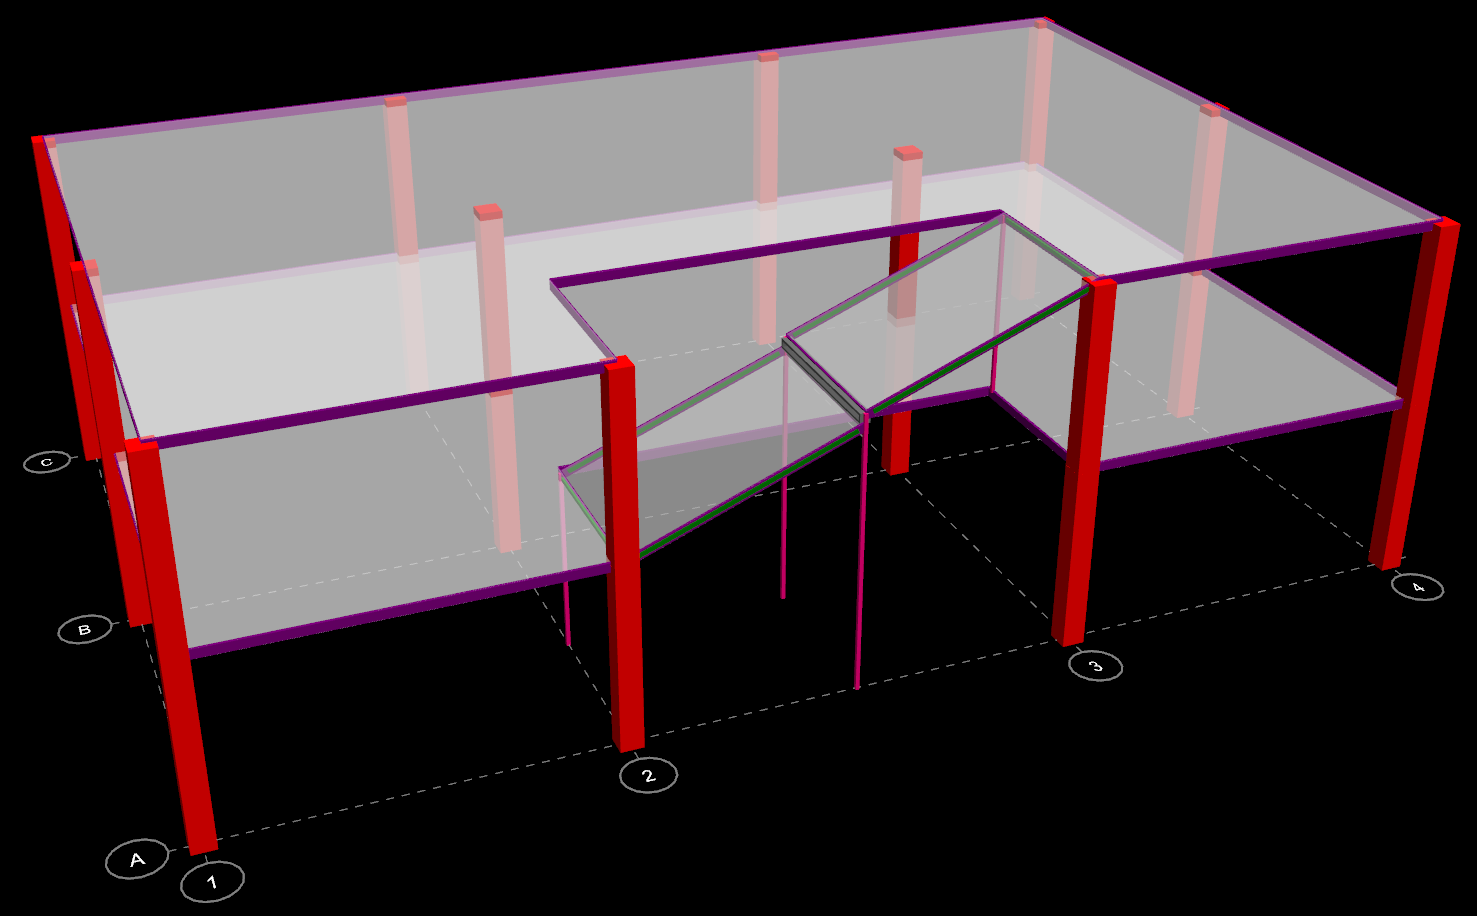 Ram Ss How To Model Ramps In Ram Structural System Ram